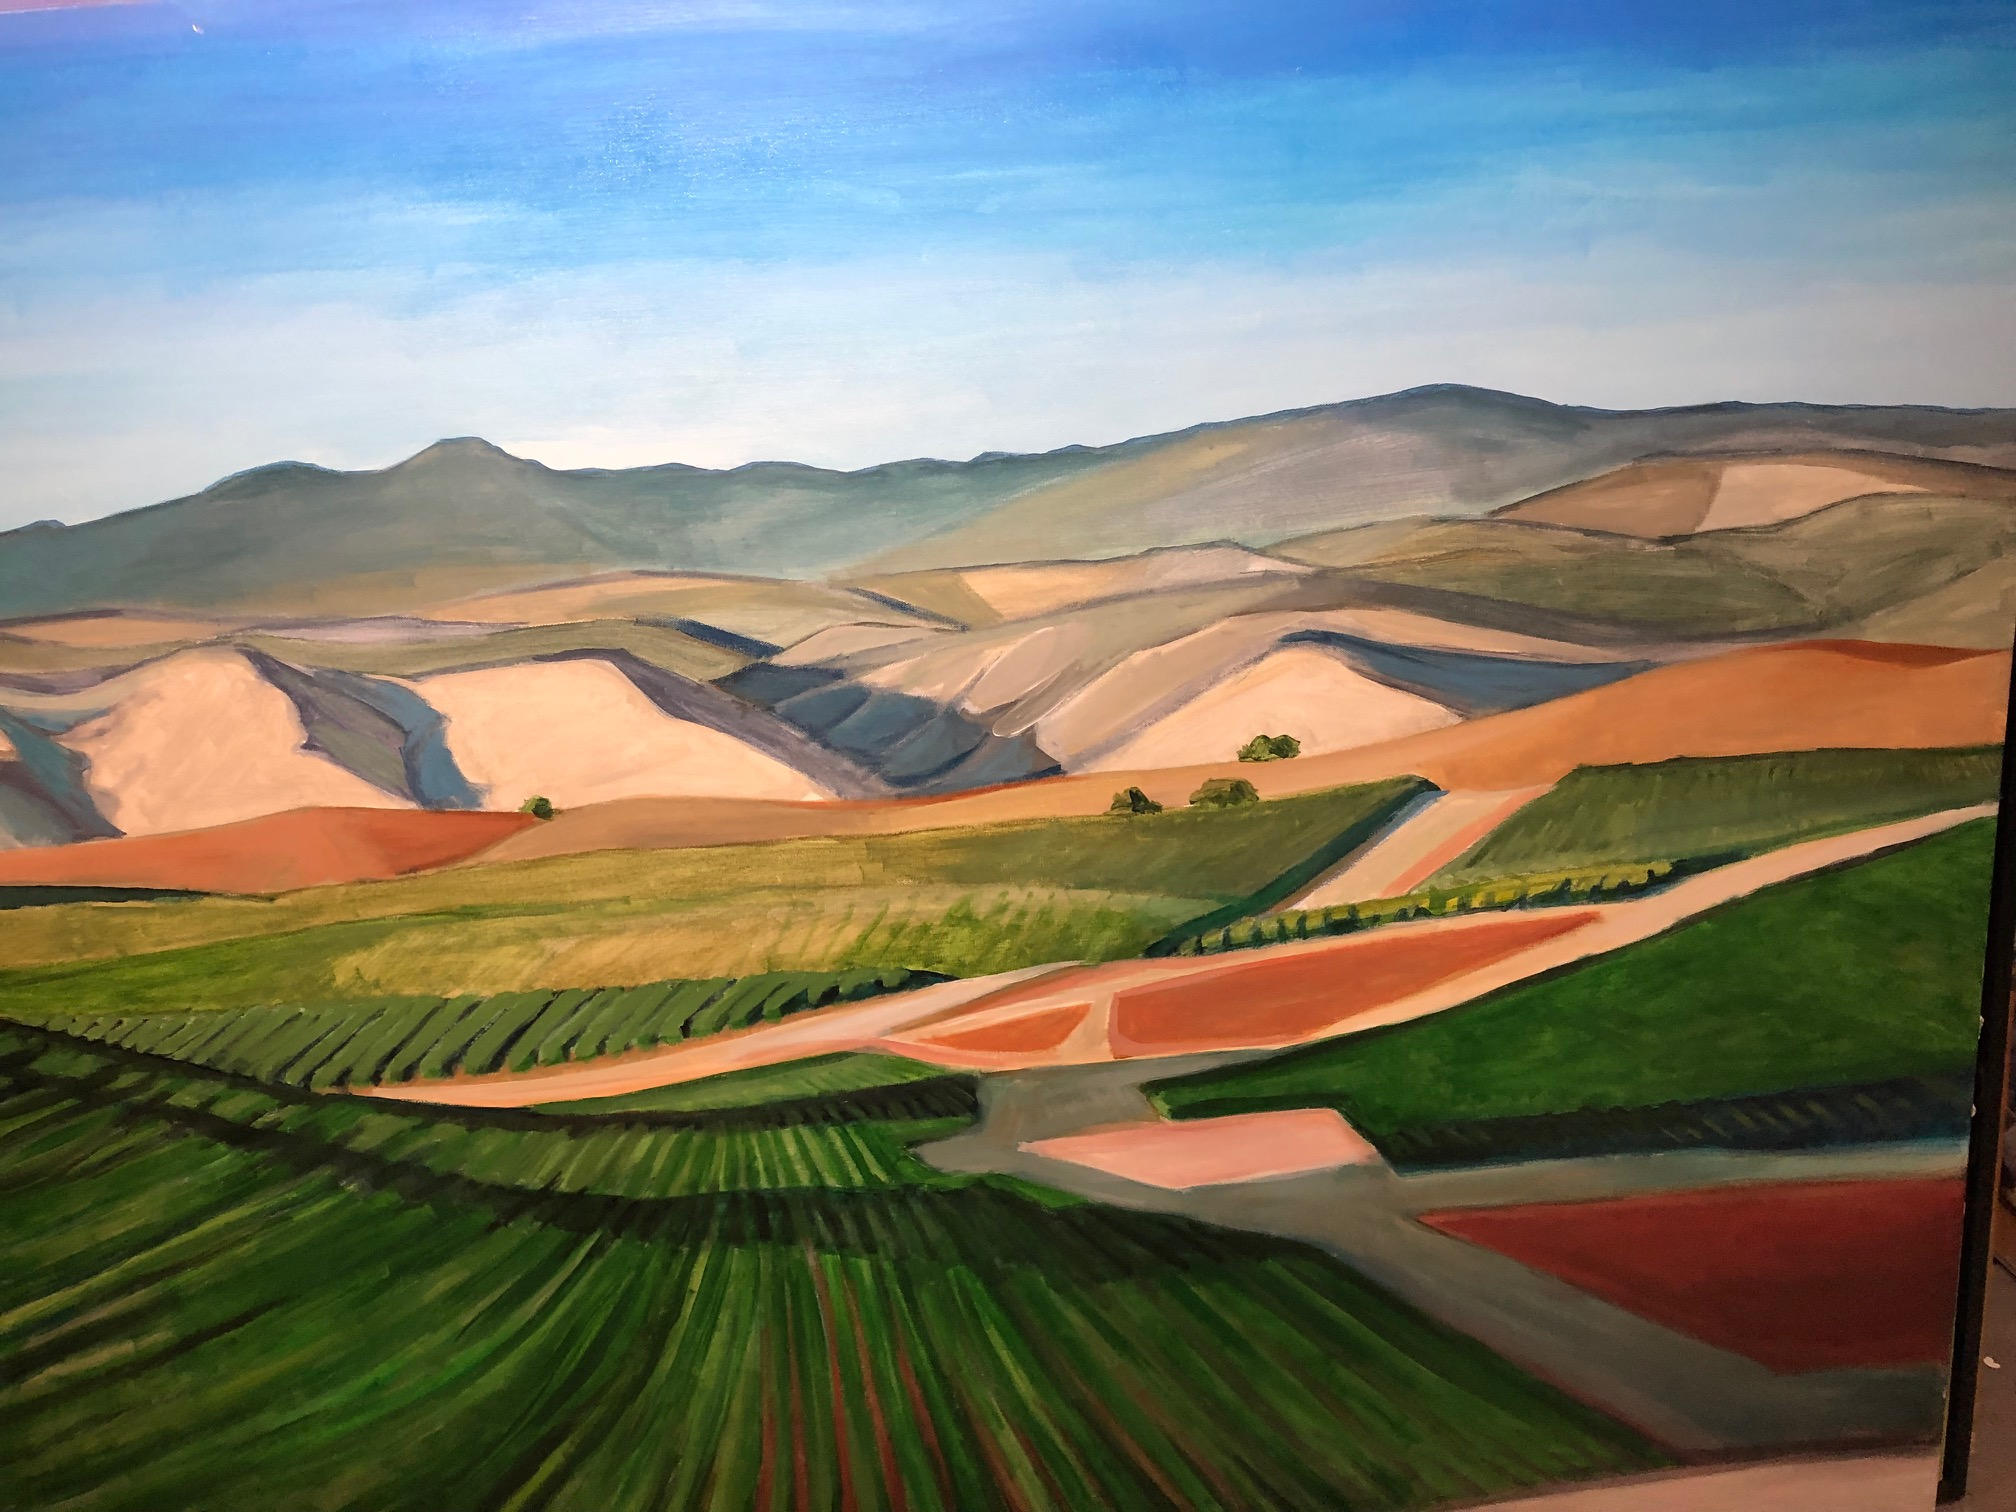 Kerry Rowland-Avrech - Foothill Vineyards - Oil on Panel - 5' X 4'